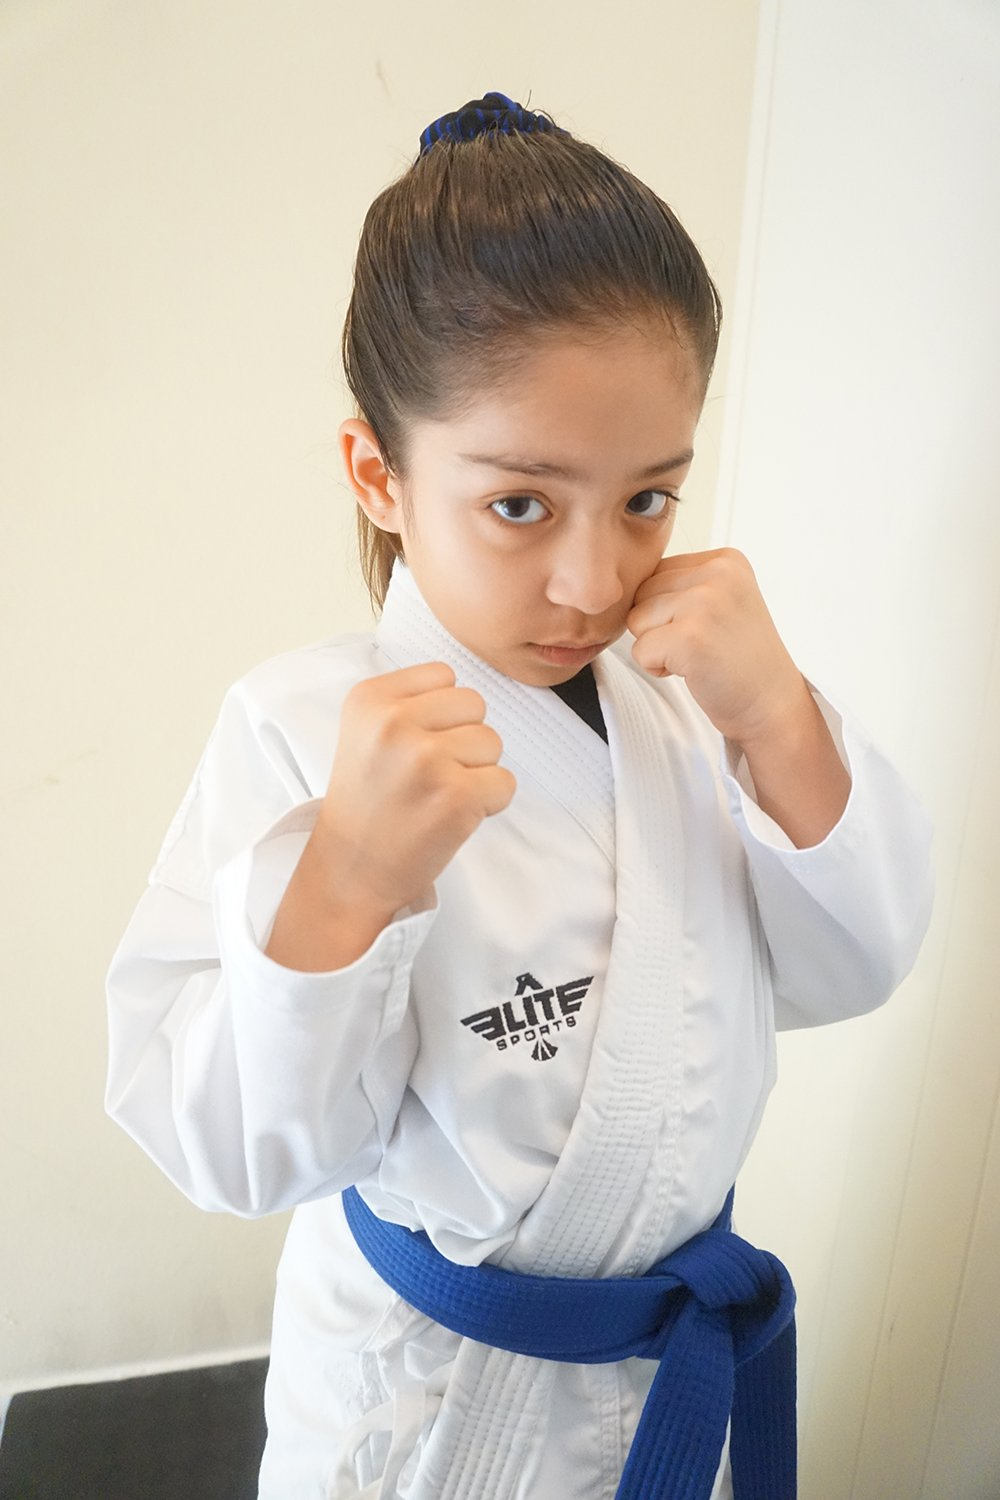 Elite sports Team Elite JUDO Samantha Cornejo image2.jpeg